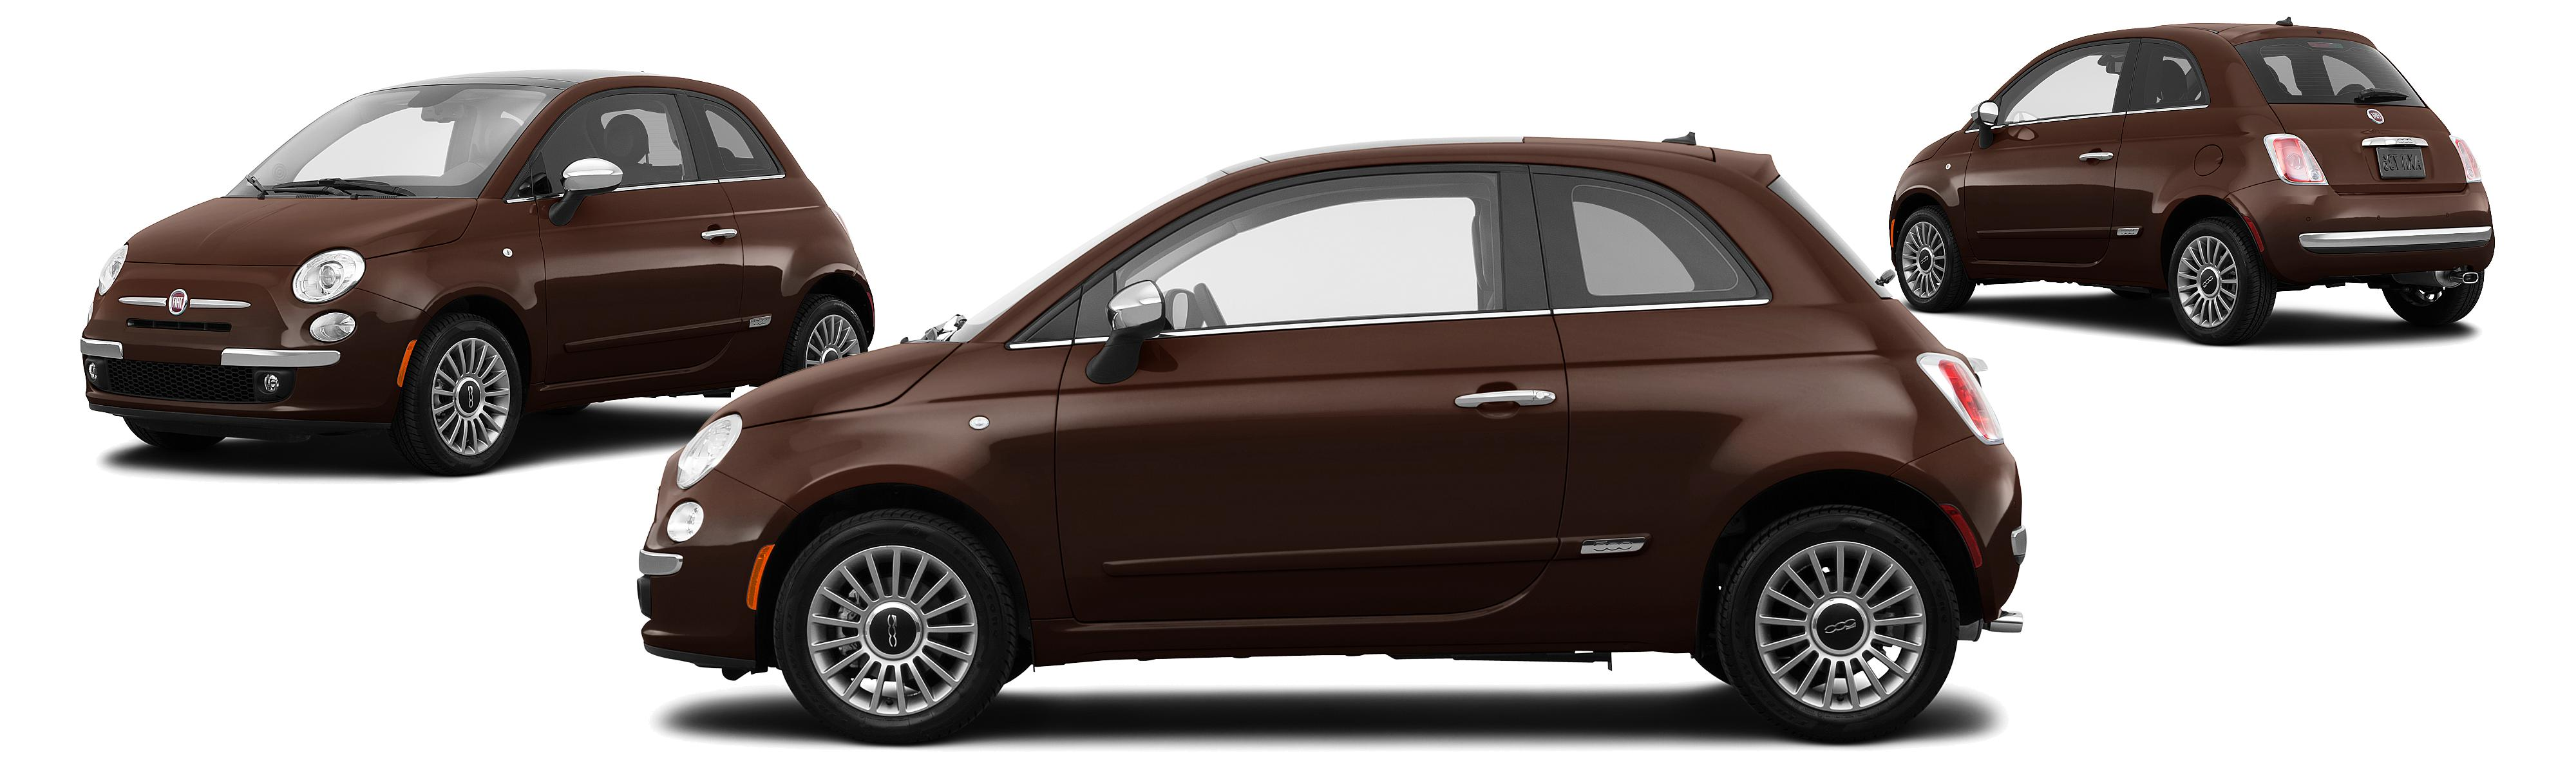 2014 FIAT 500 Lounge 2dr Hatchback - Research - GrooveCar